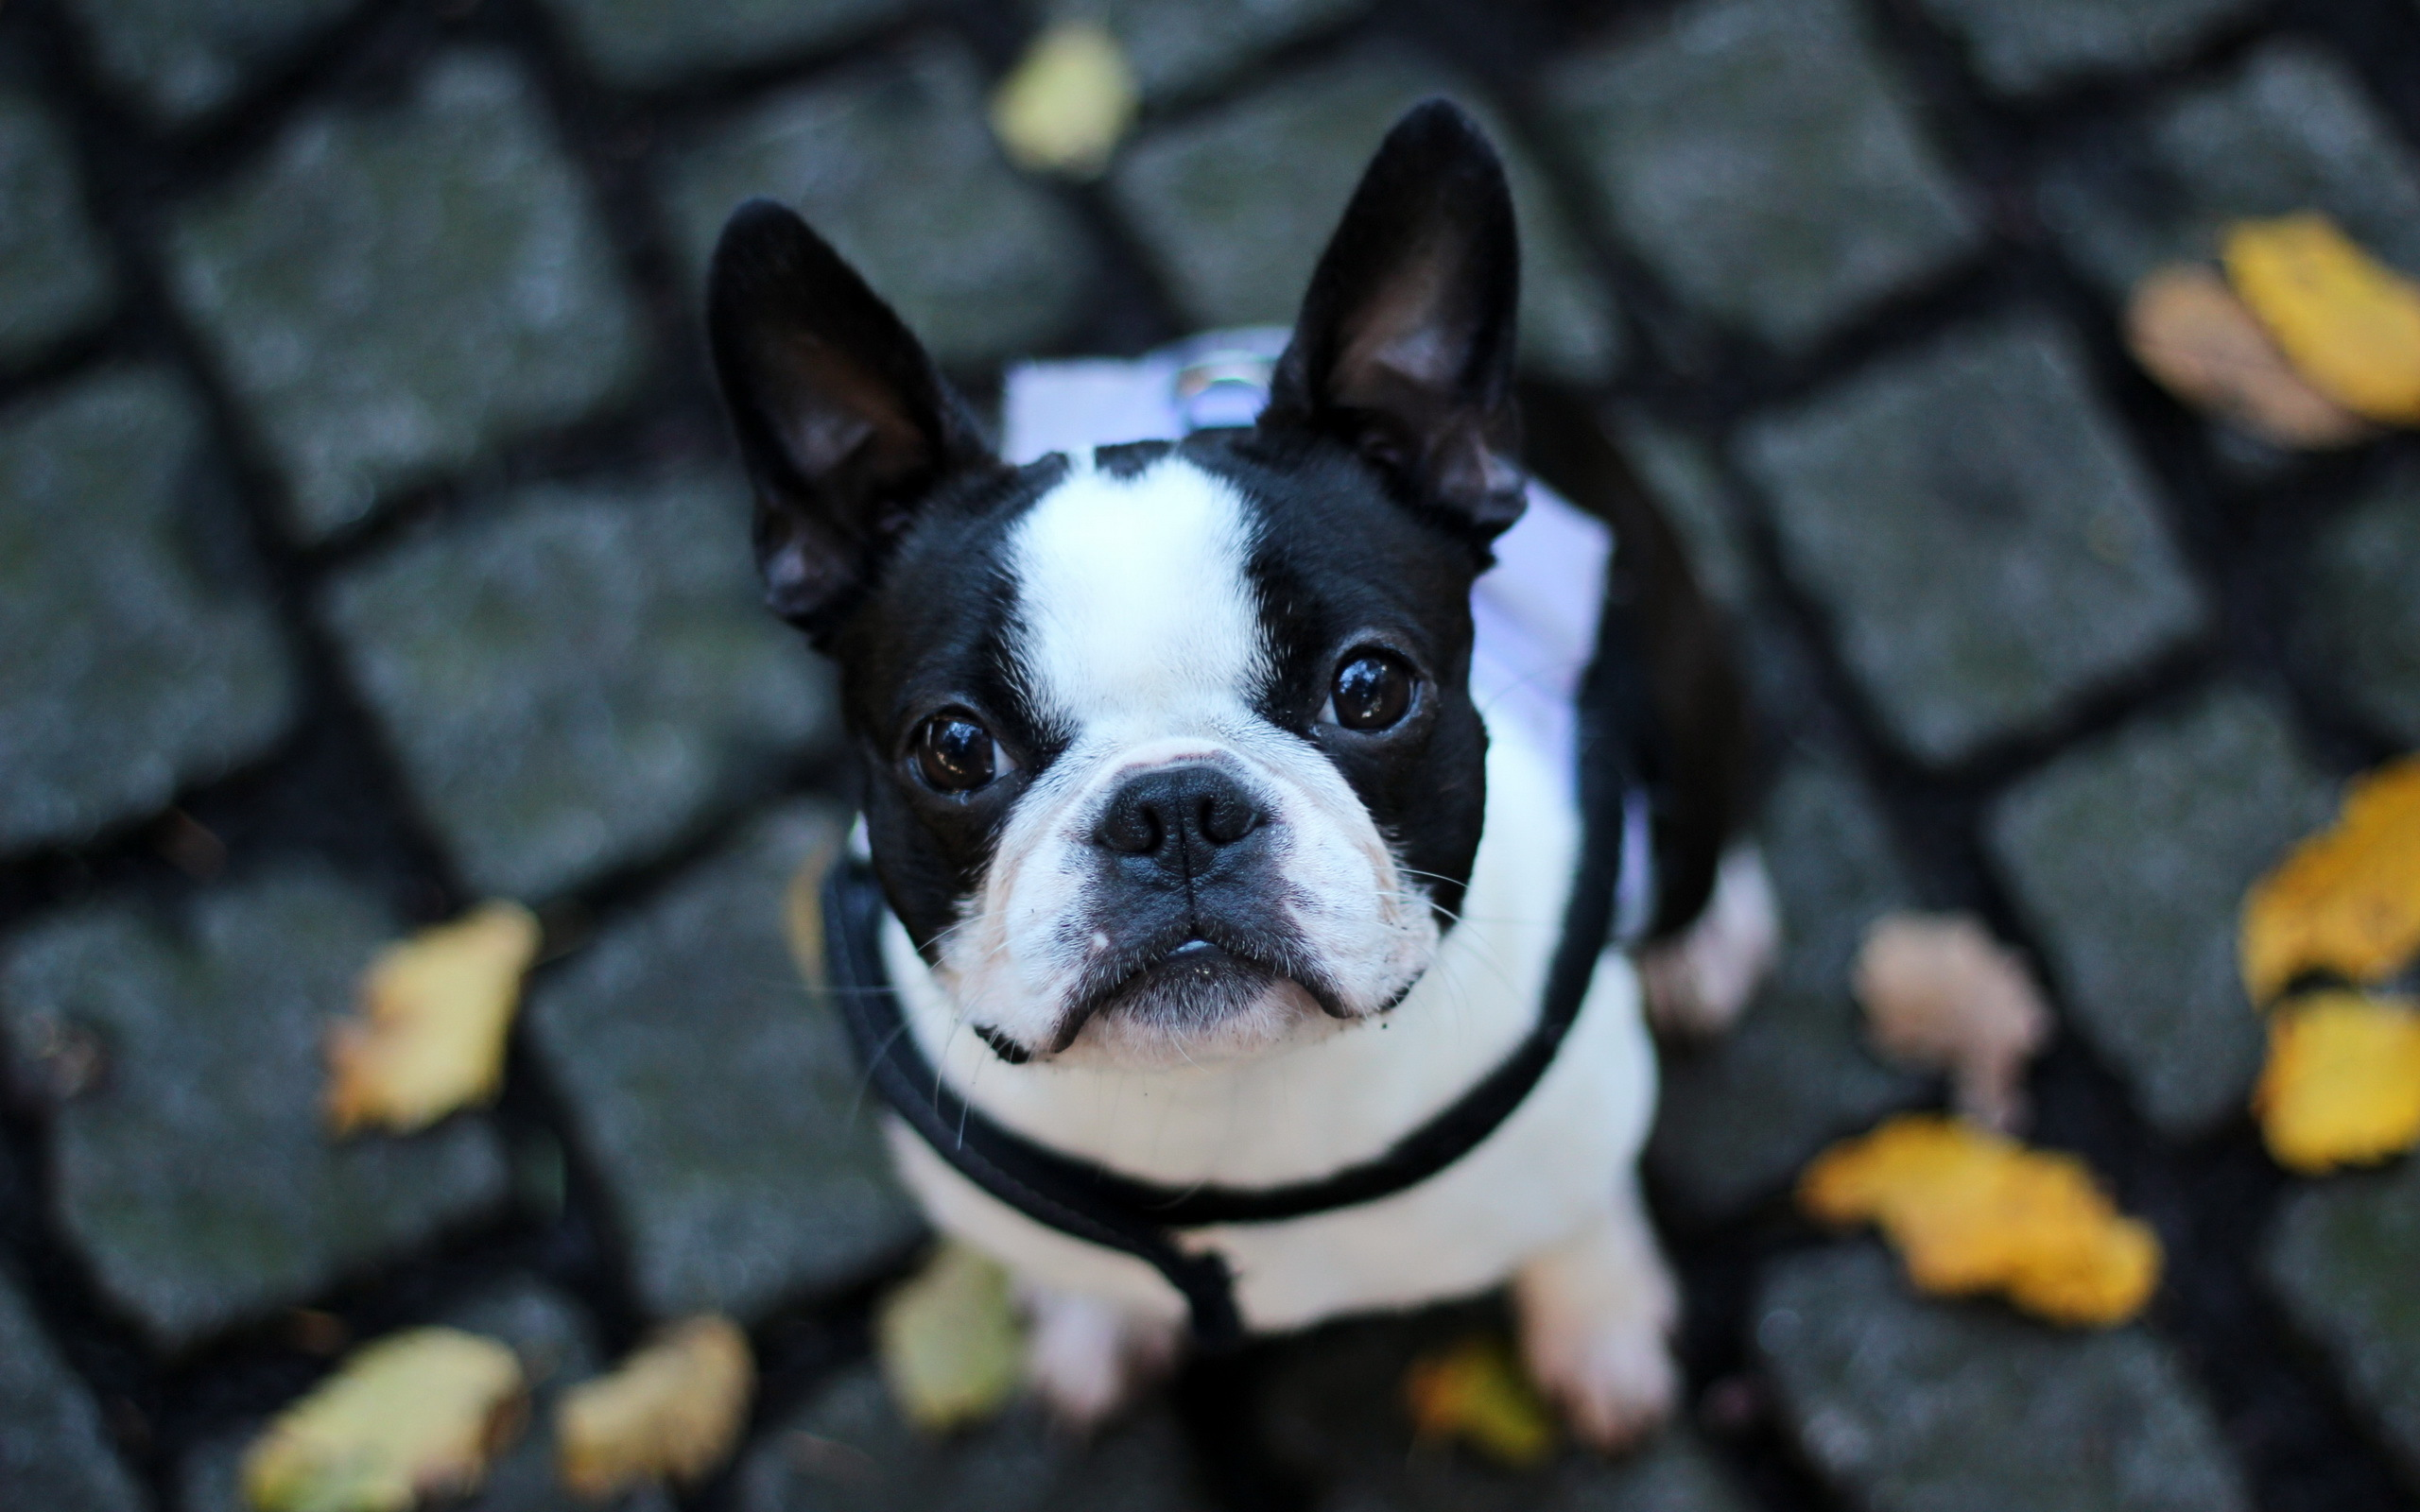 Cute french bulldog wallpaper - photo#9